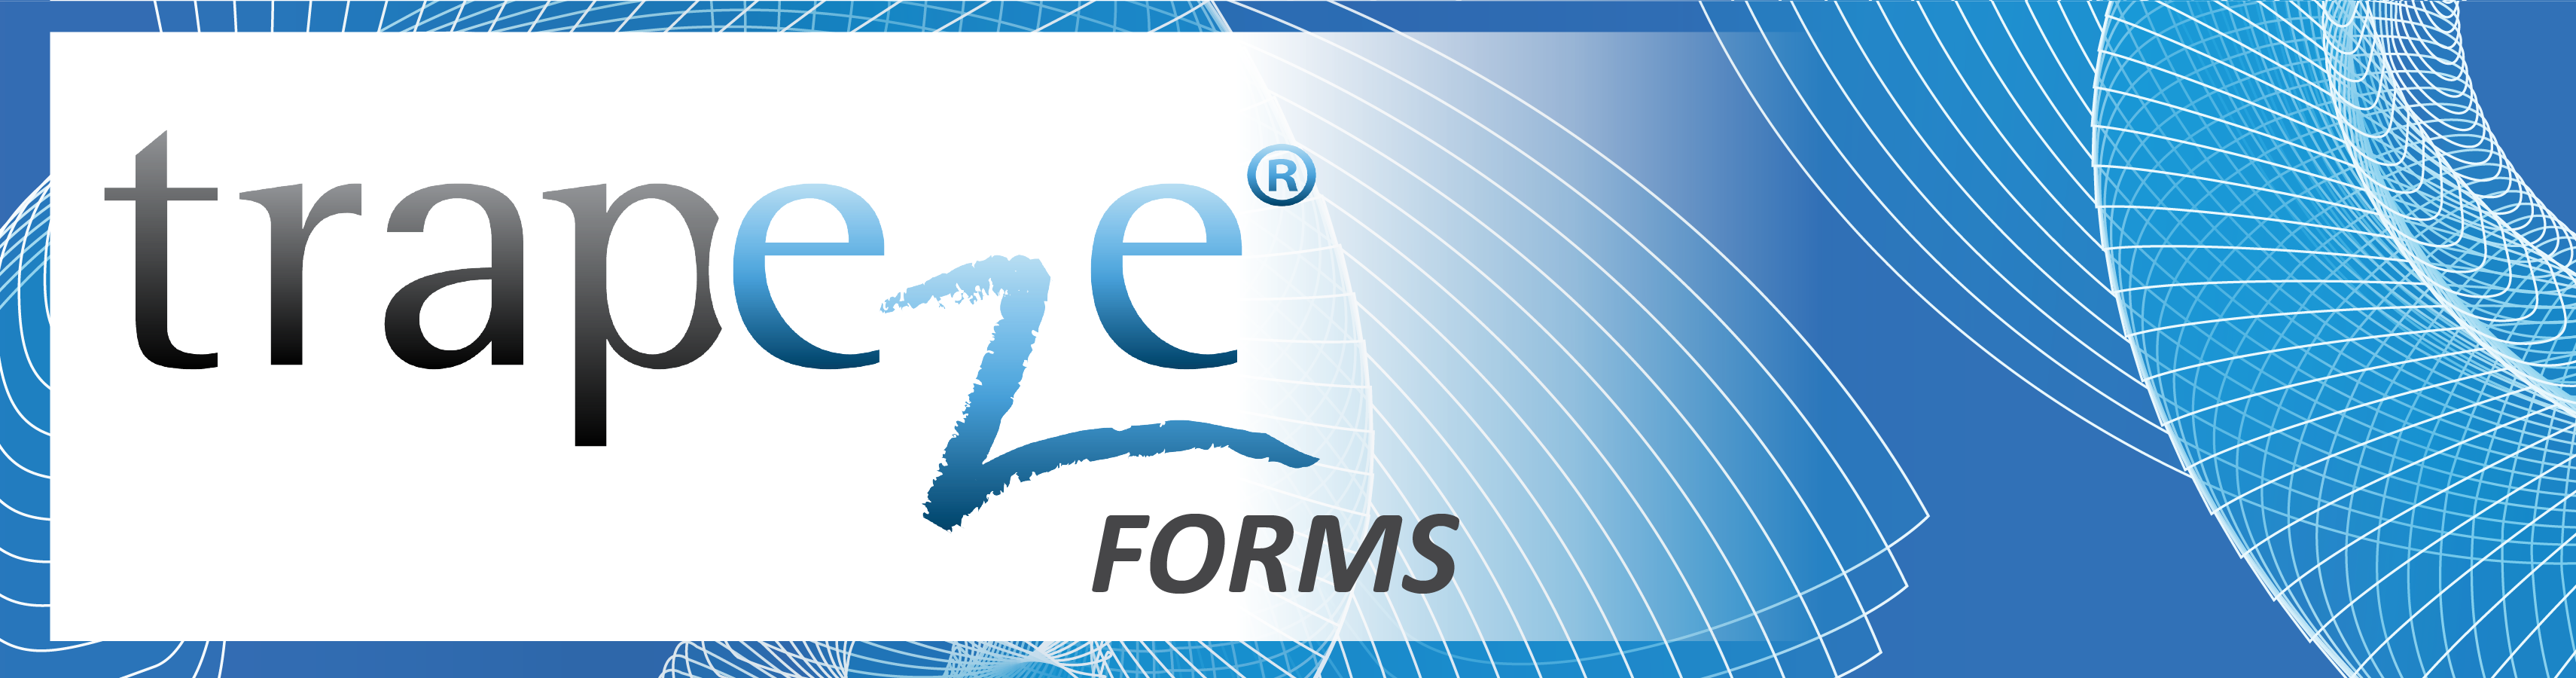 Trapeze for Forms: Automated Data Extraction Software from CVISION